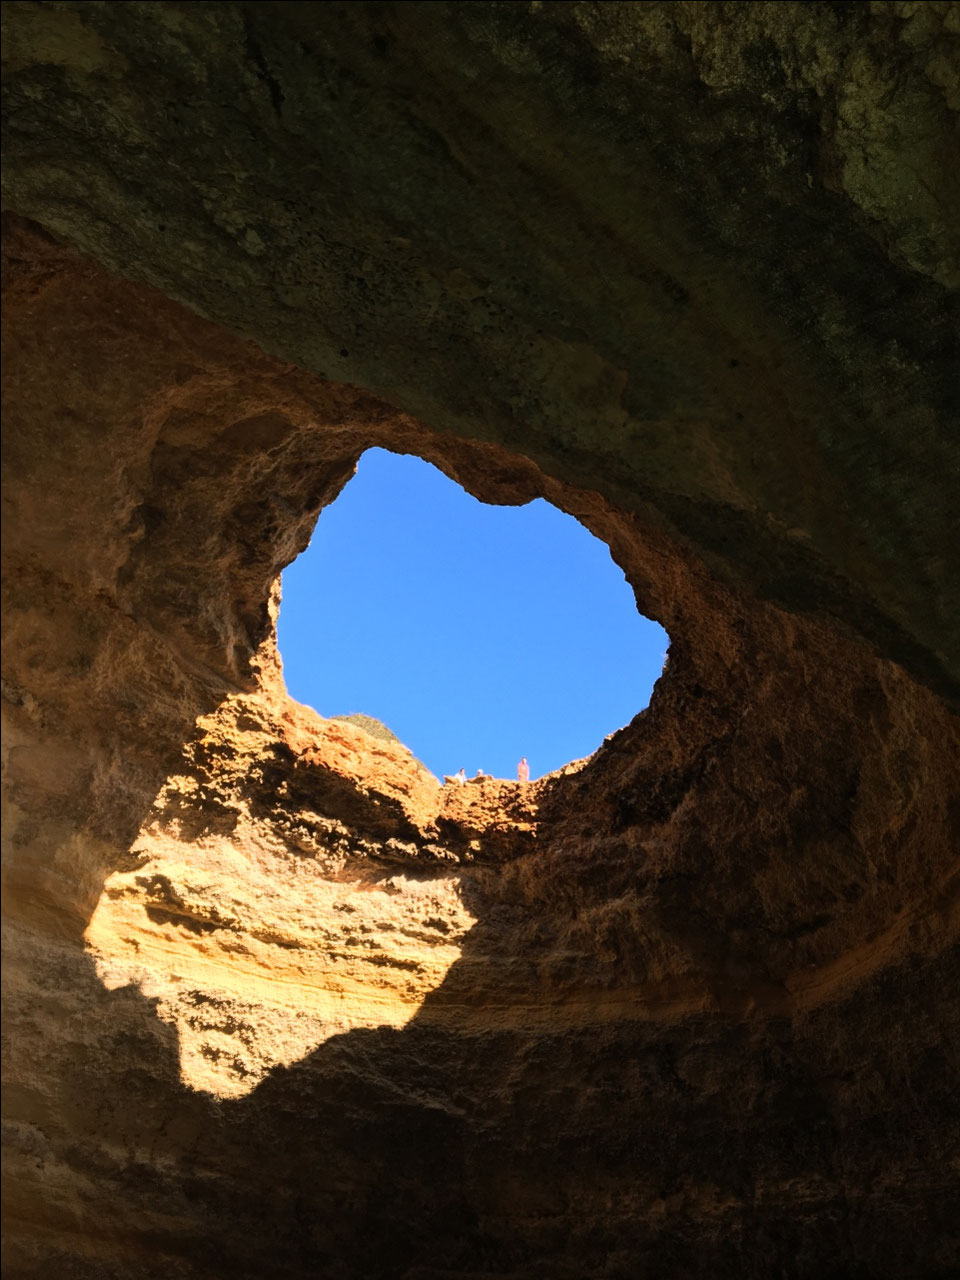 Looking up from inside a cave